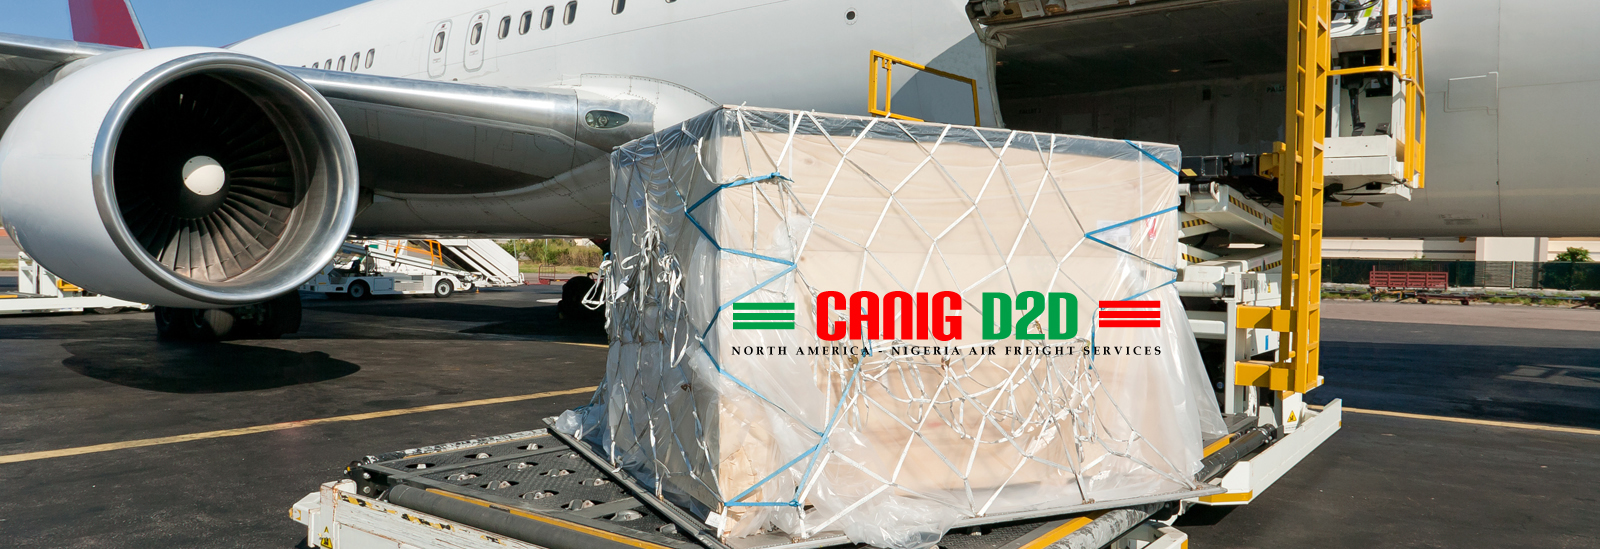 cargoandtransport